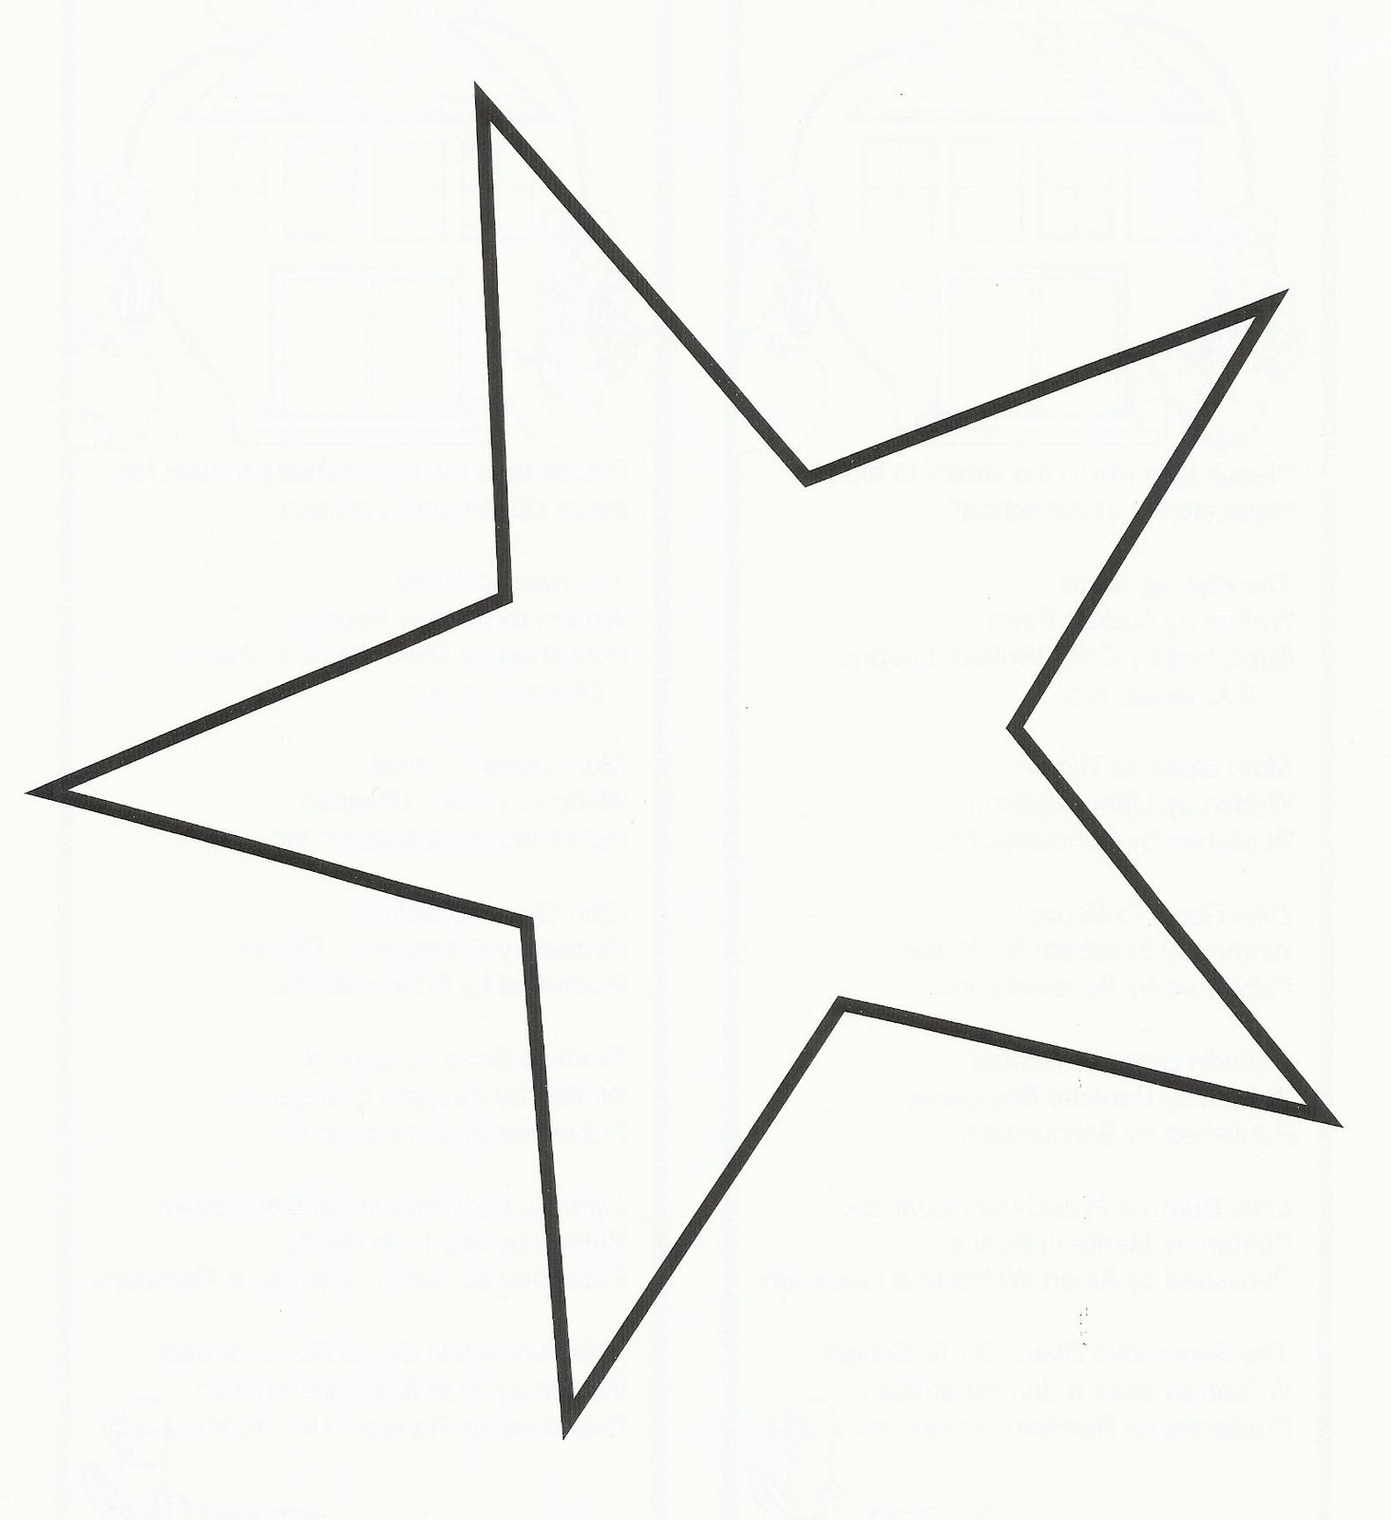 Star outline images images for 5 point star outline clipart.